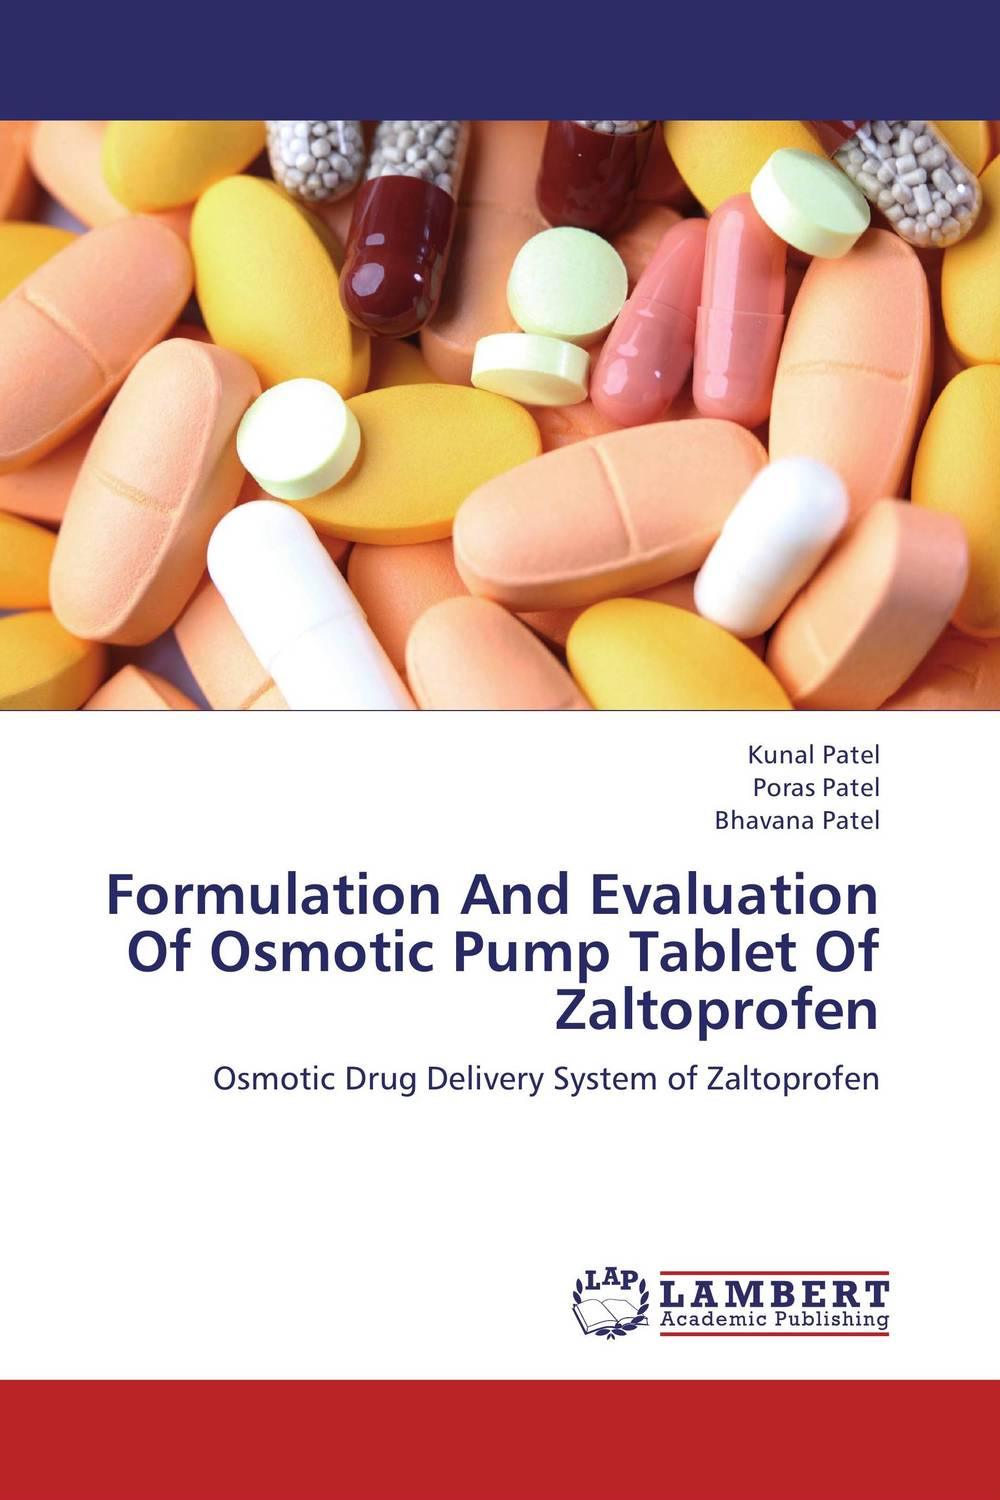 Formulation And Evaluation Of Osmotic Pump Tablet Of Zaltoprofen the role of evaluation as a mechanism for advancing principal practice